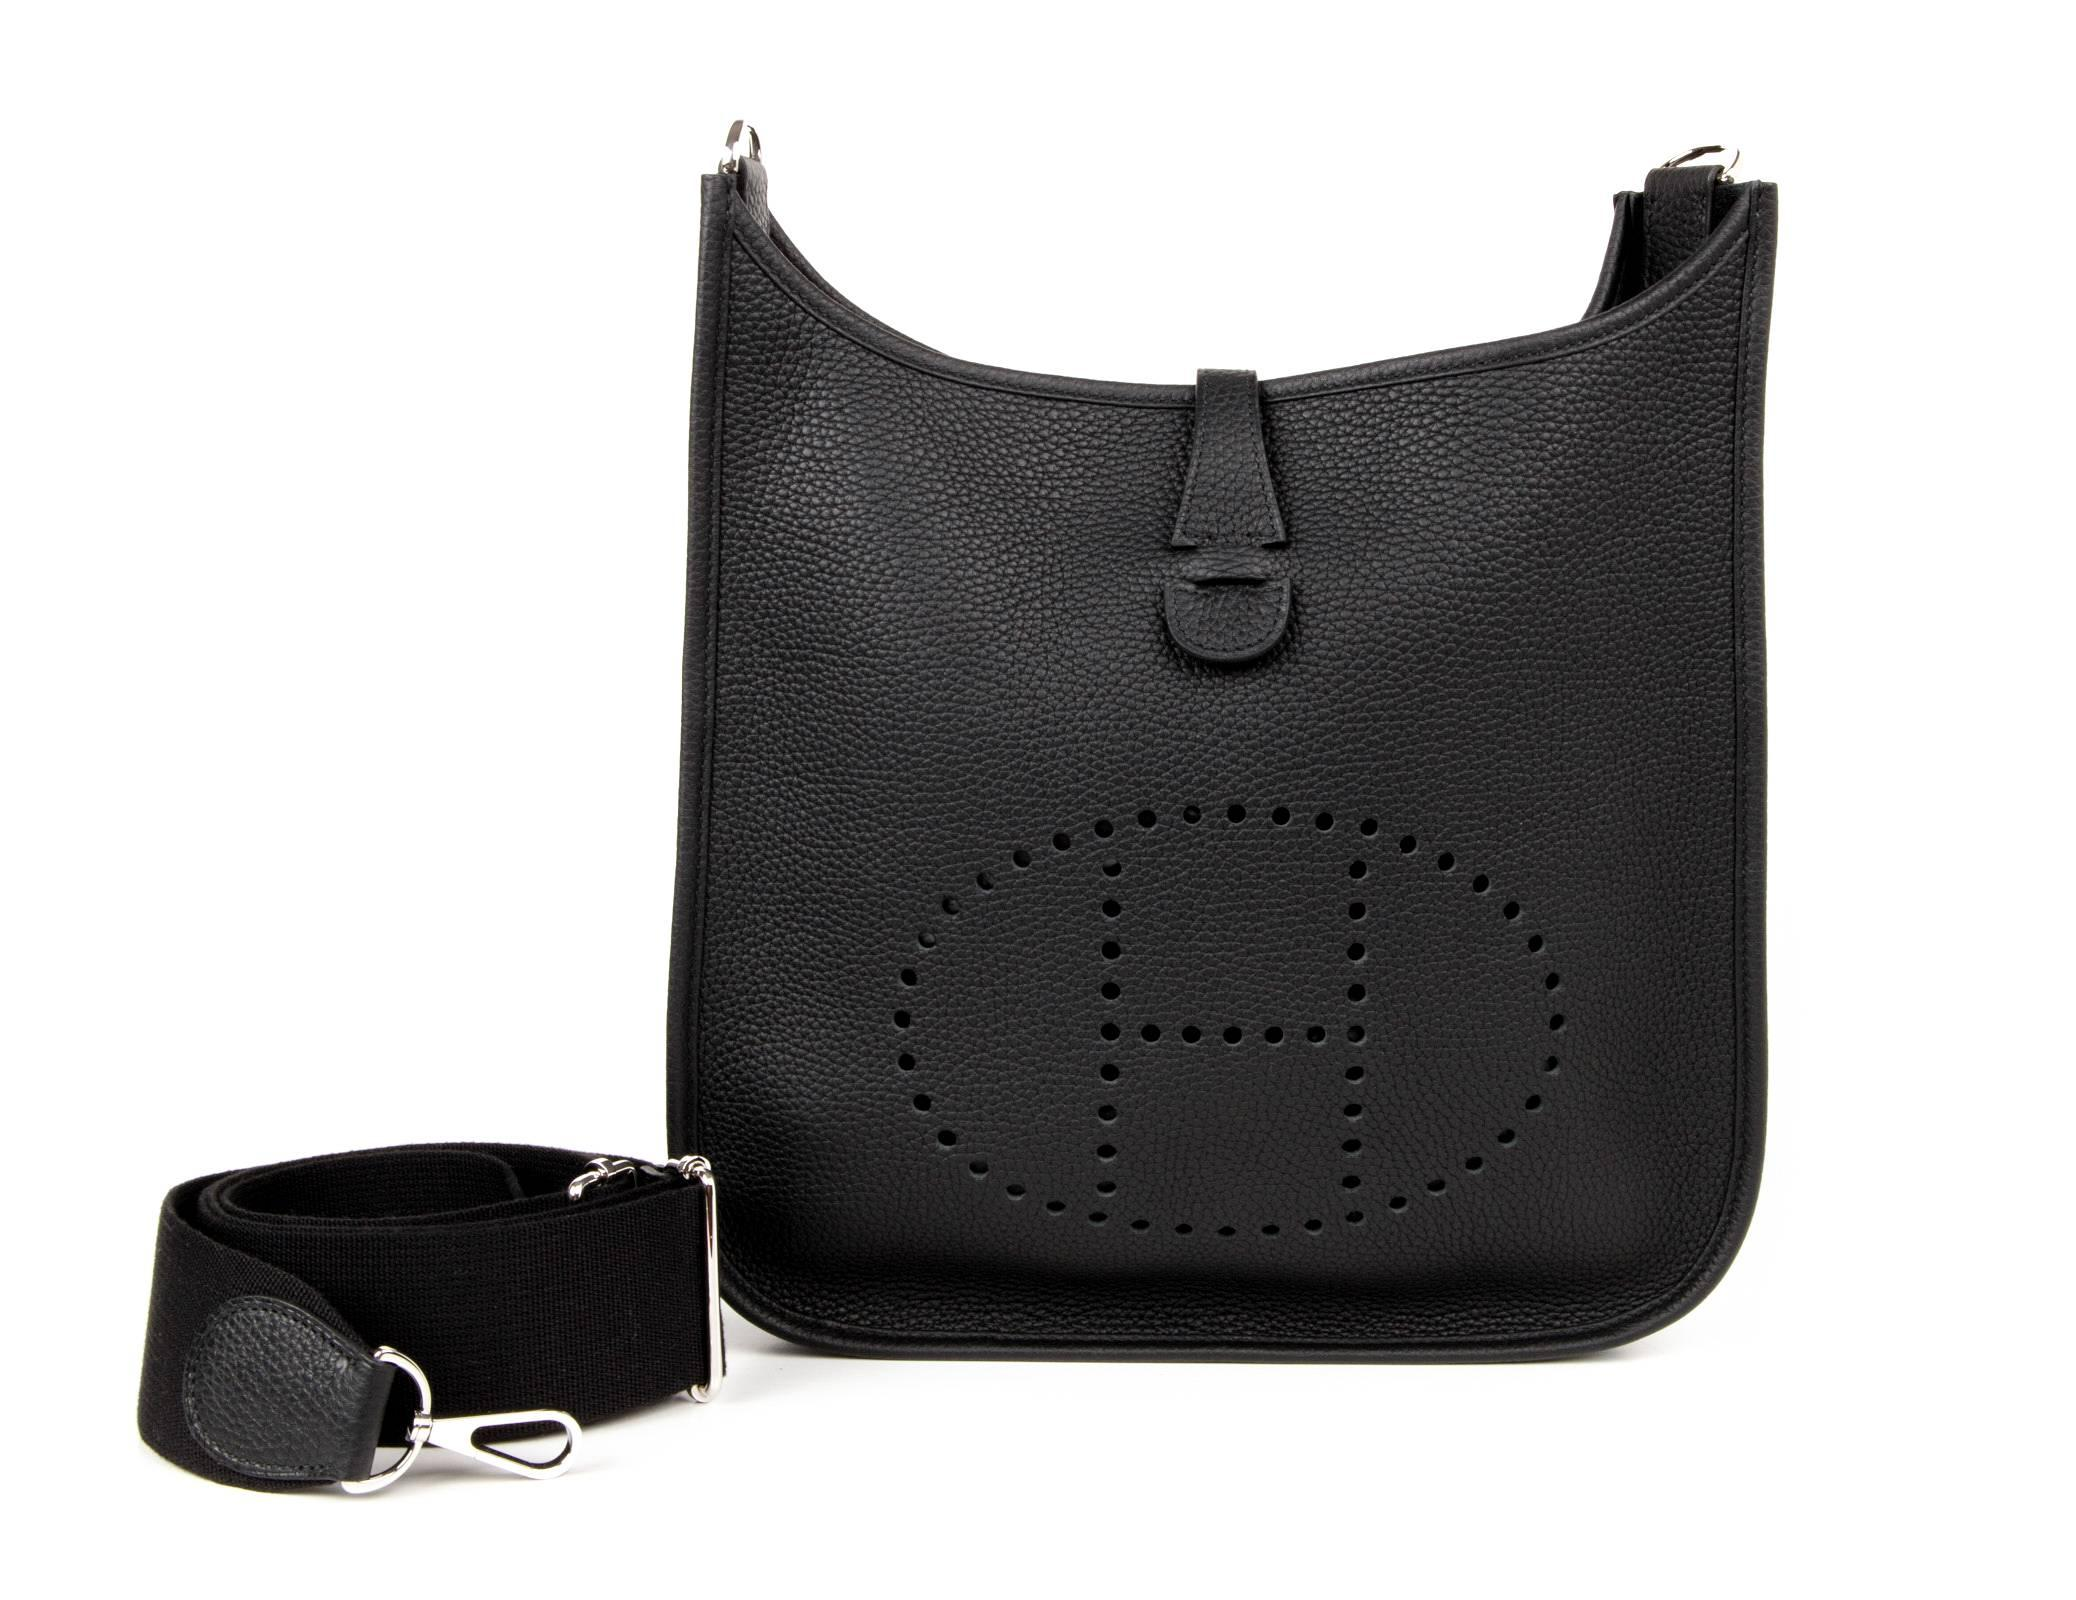 1e310b94a6 discount hermès evelyne pm crossbody bag a91f8 fe83b  uk coveted hermes  evelyne pm in jet black. fresh with clemence leather and palladium hardware